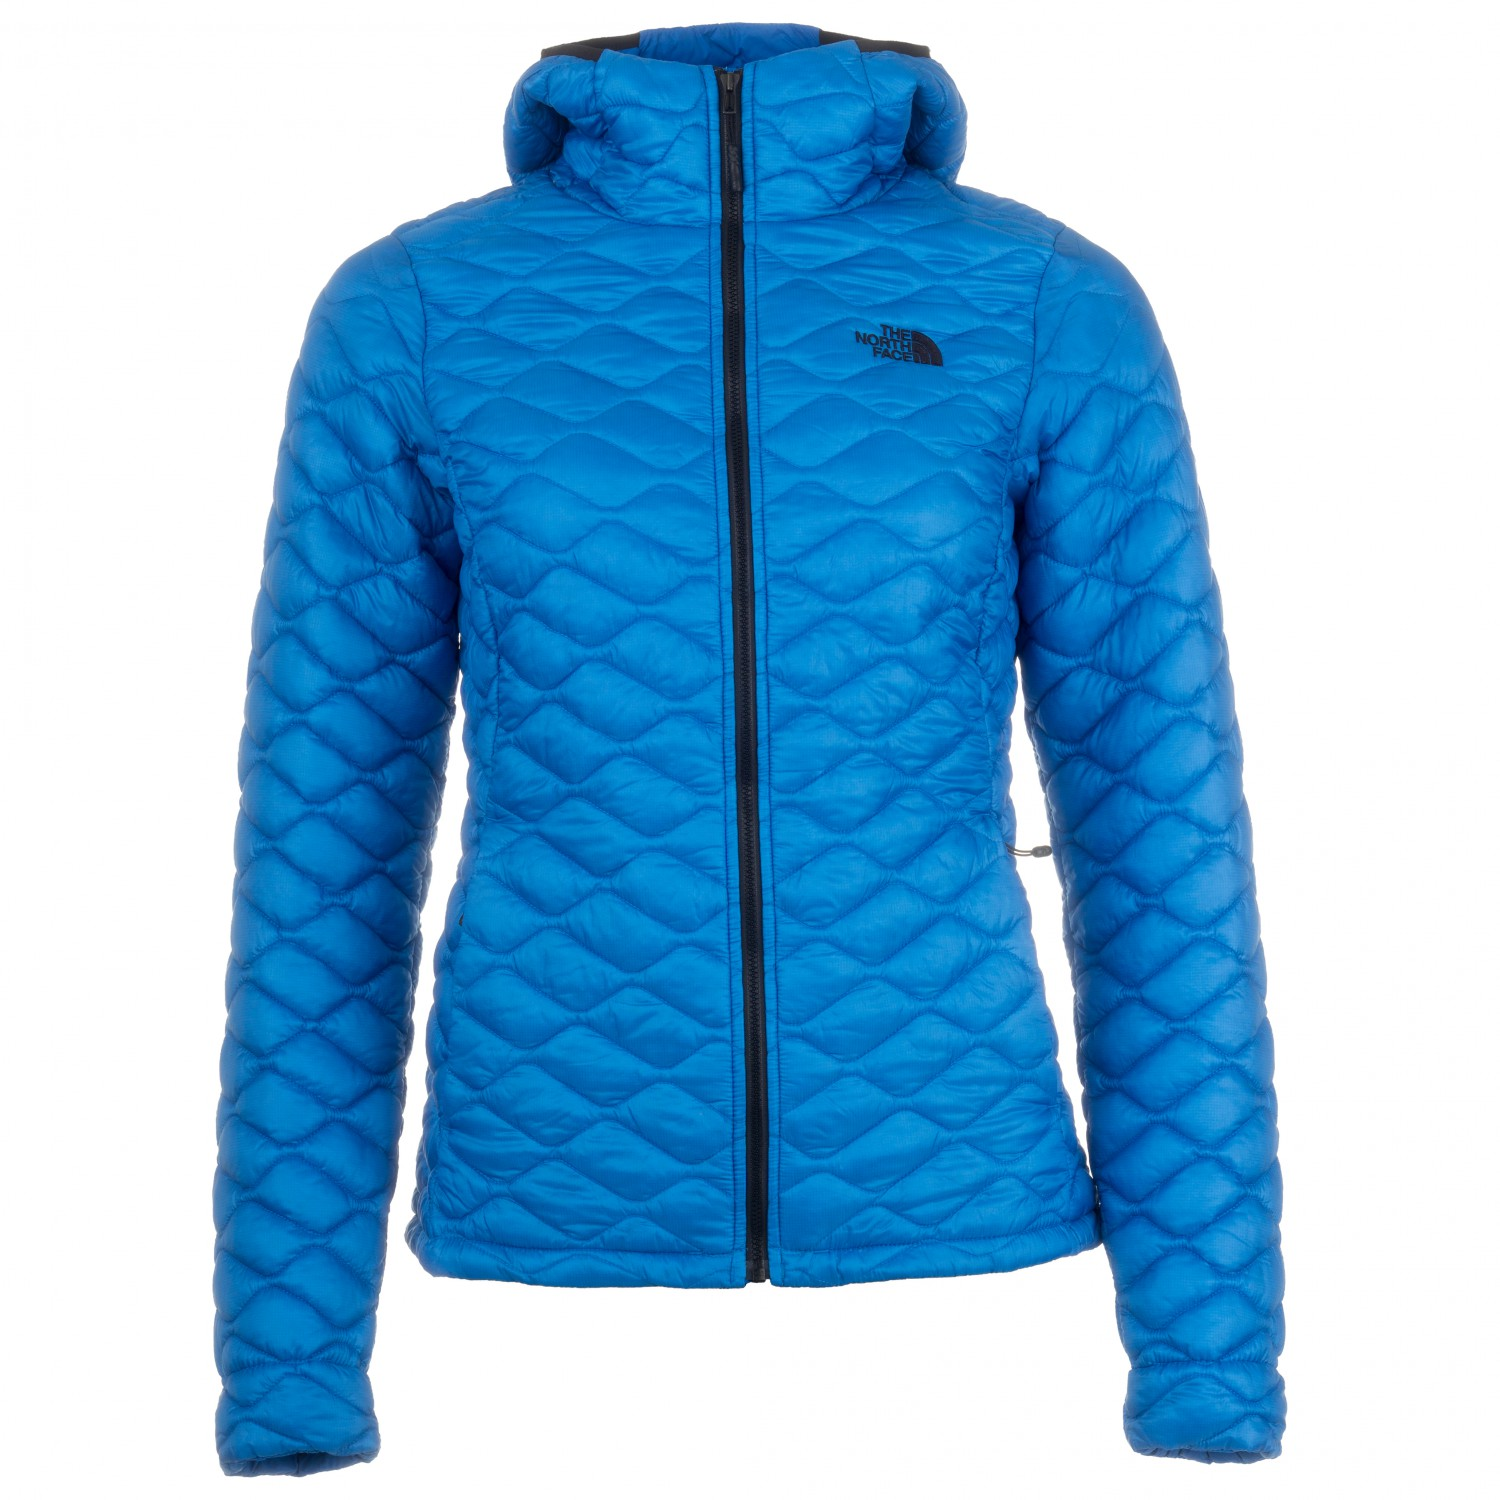 7006c618c1da The North Face Thermoball Hoodie - Synthetic Jacket Women s